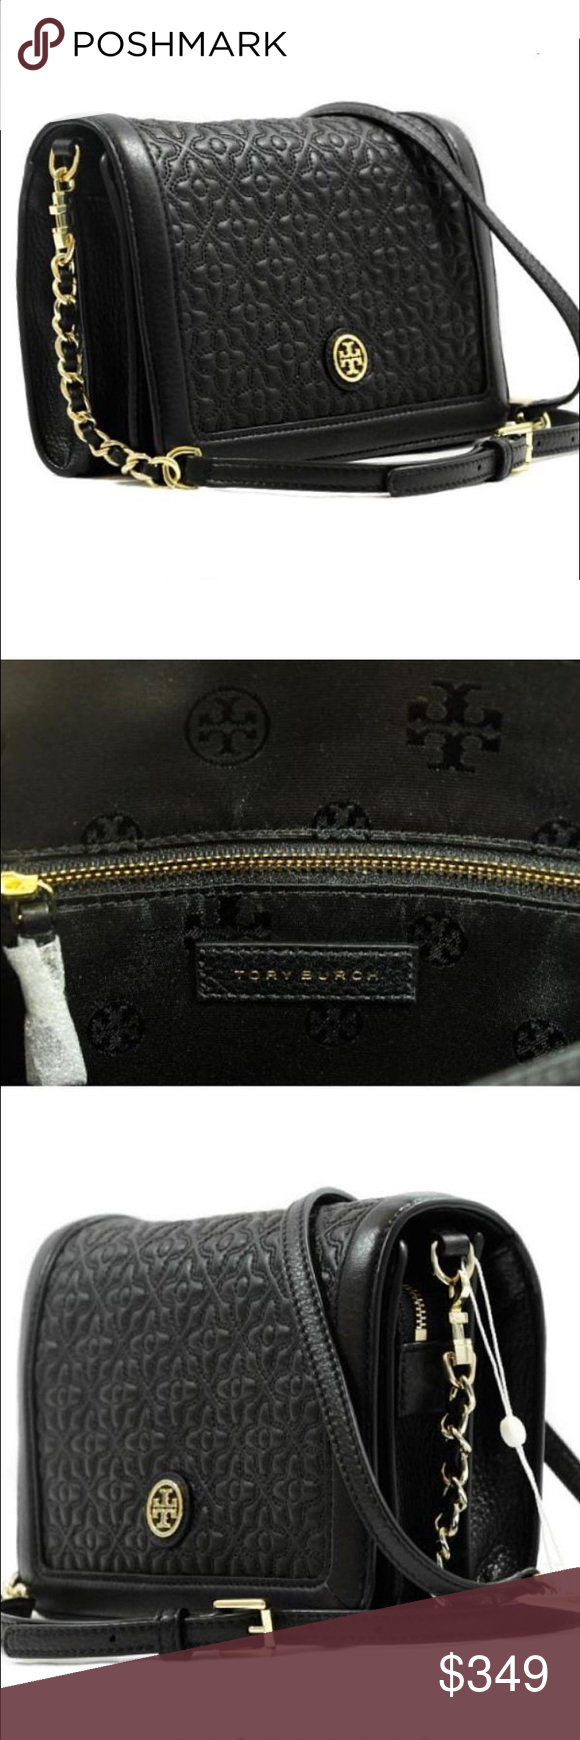 1ee14d26501 Authentic Tory Burch Bryant Black Cross Body Bag Authentic Beautiful Tory  Burch Bryant Quilted Leather Cross